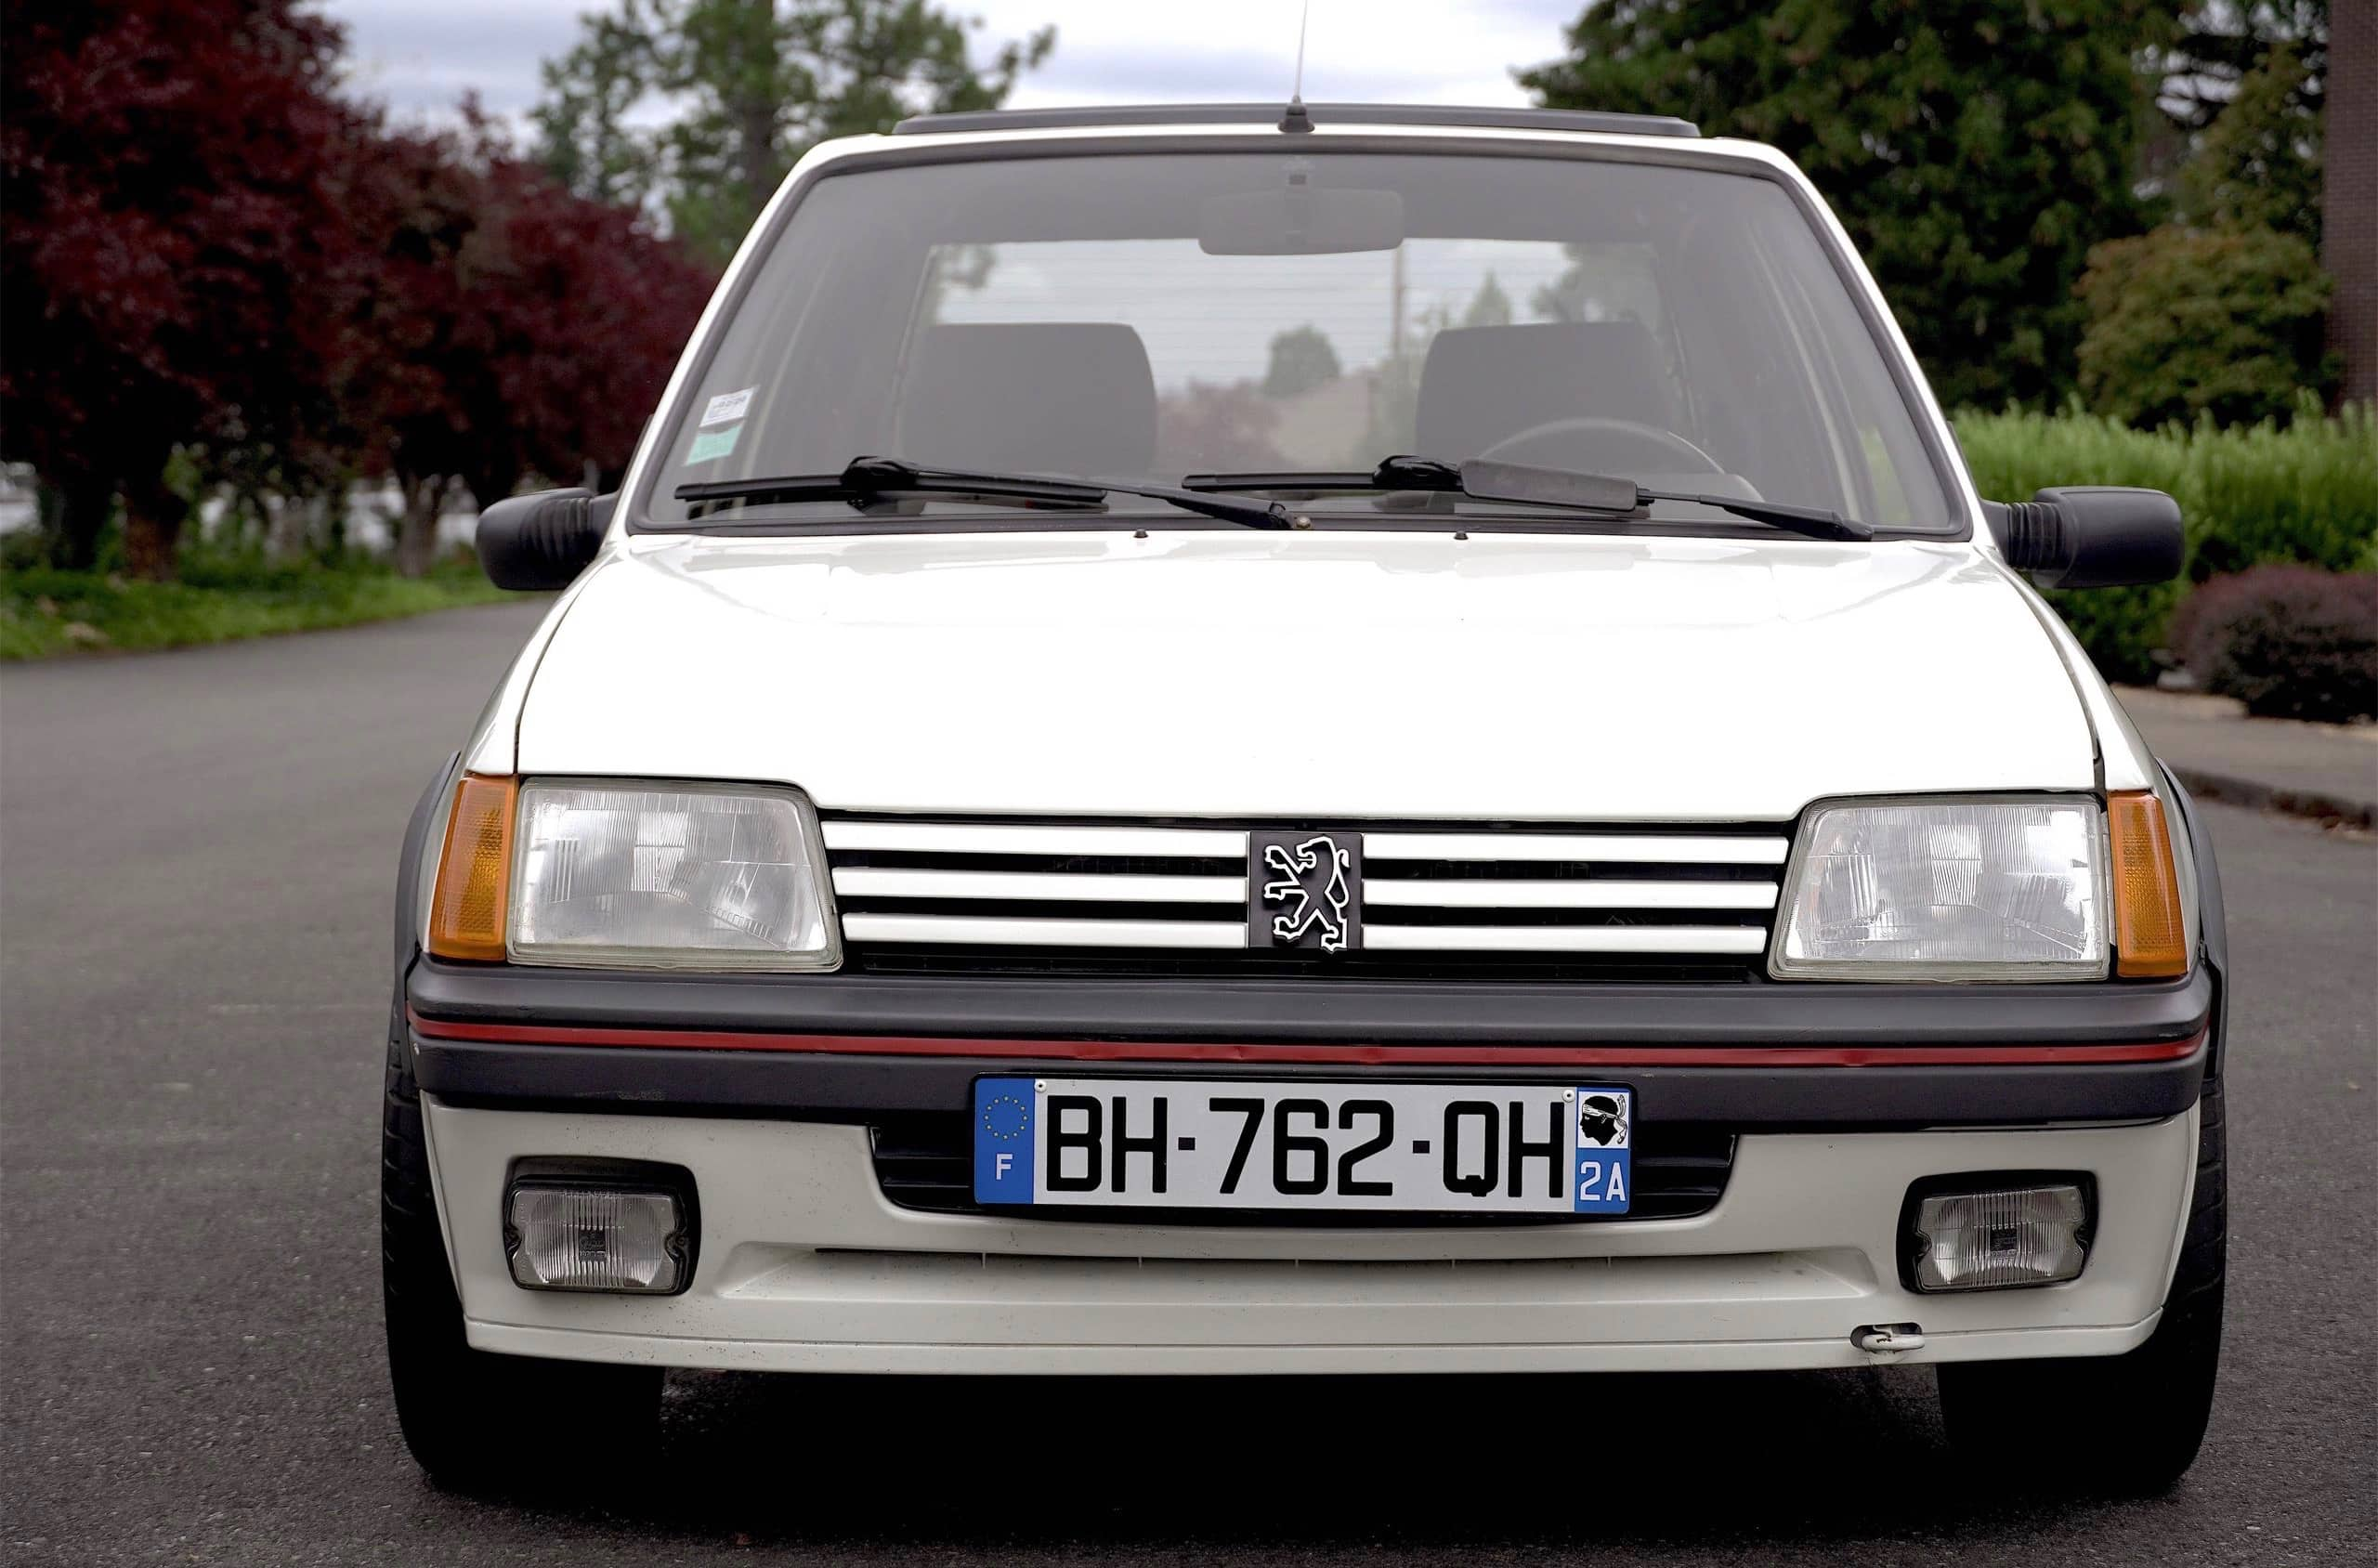 1988 Peugeot 205 GTi, Volkswagen wasn't the only company making a wonderful GTi, ClassicCars.com Journal